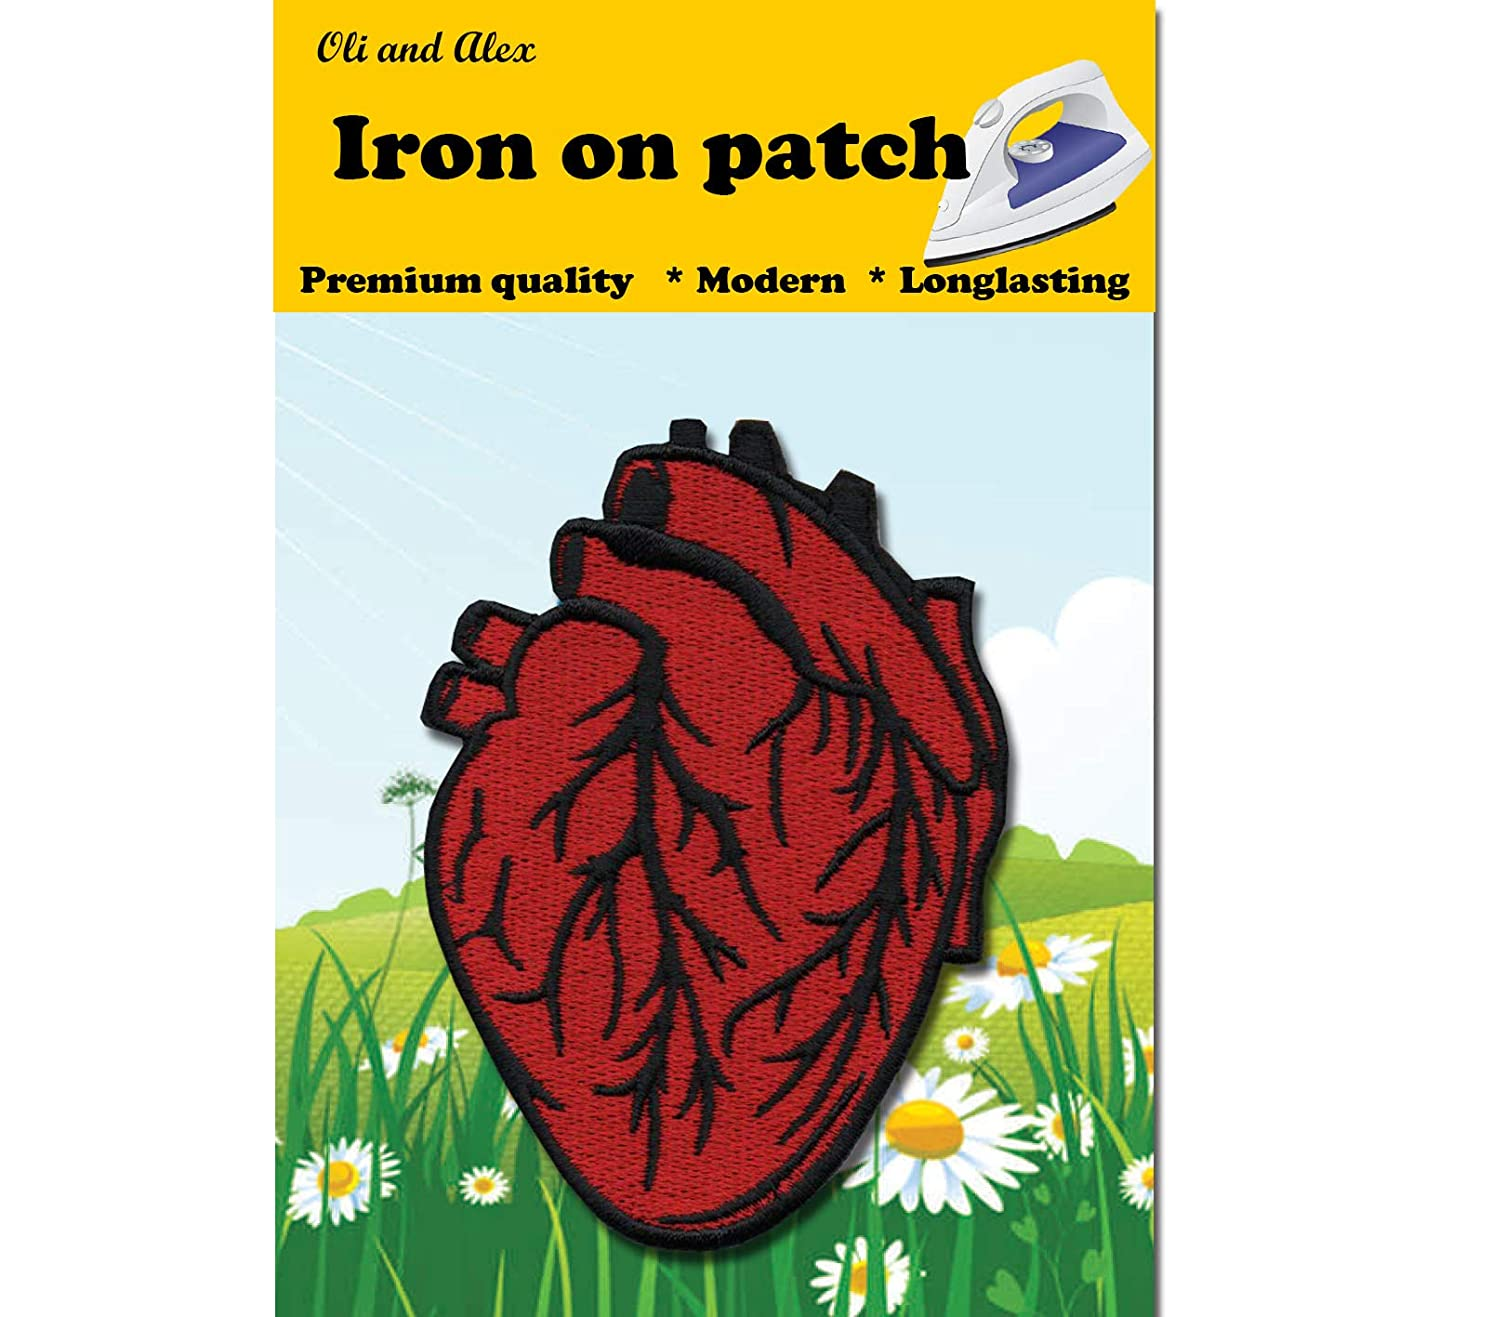 Iron On Patches - Red Anatomical Heart Patch Jacket Patches Iron On Patch Embroidered Applique A-181